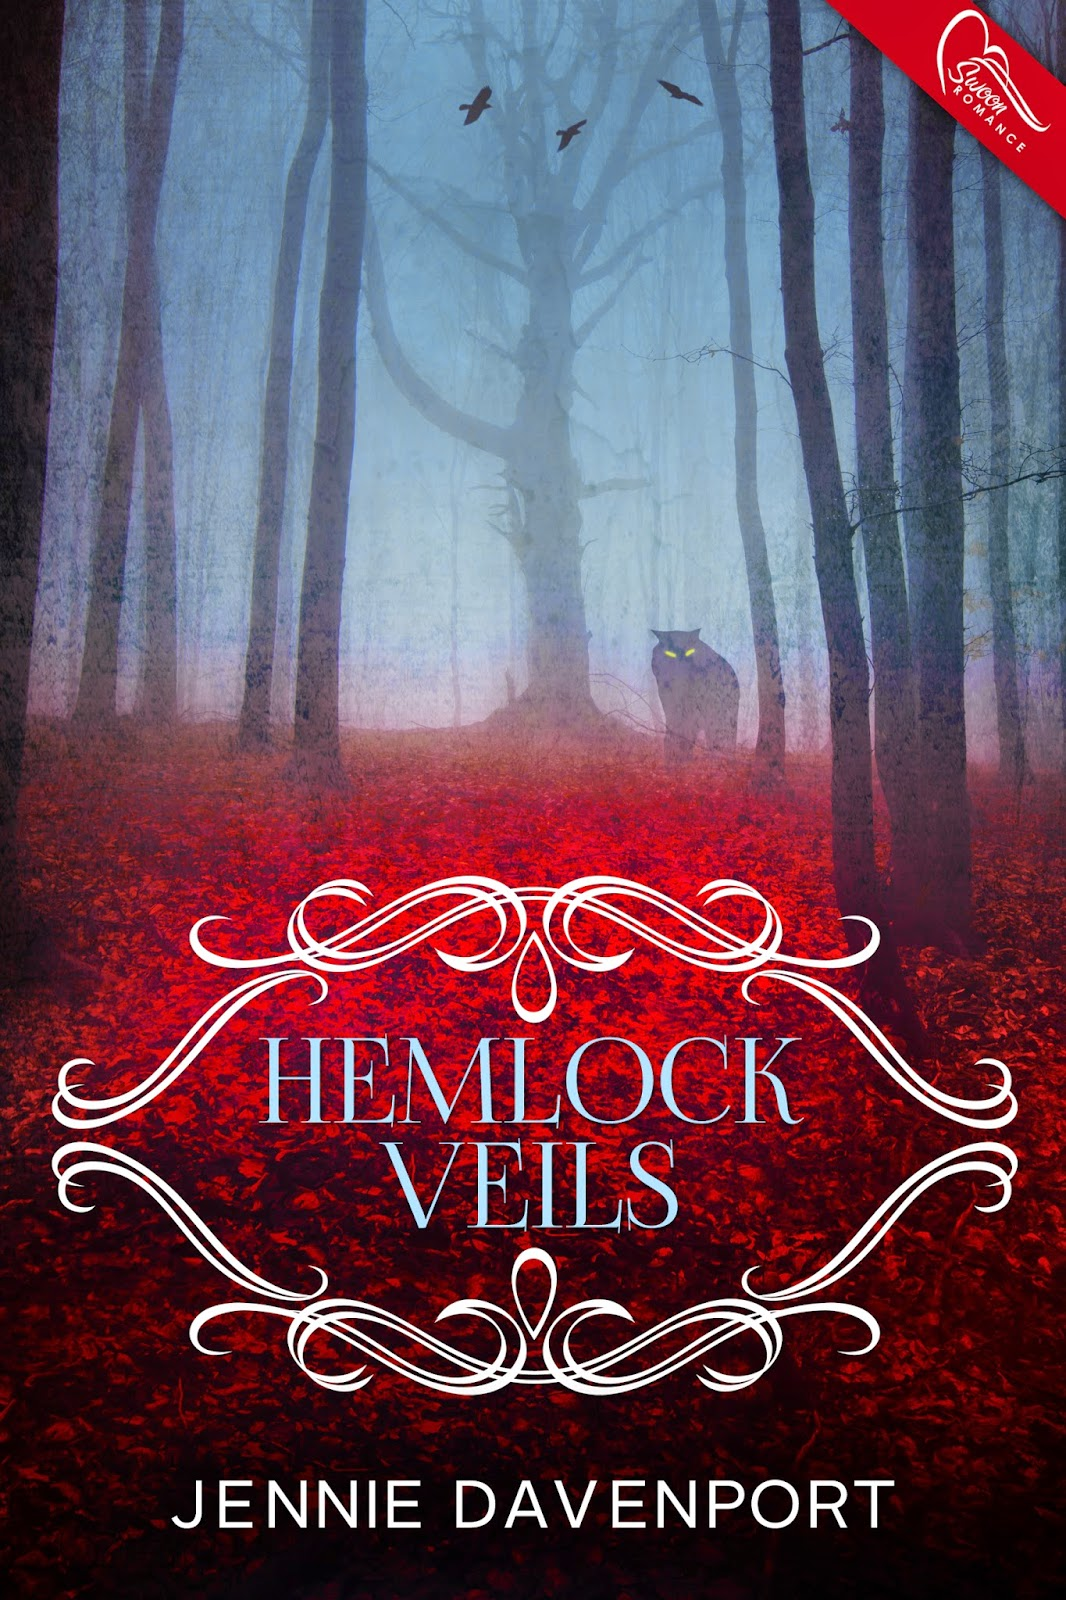 Hemlock Veils on Goodreads